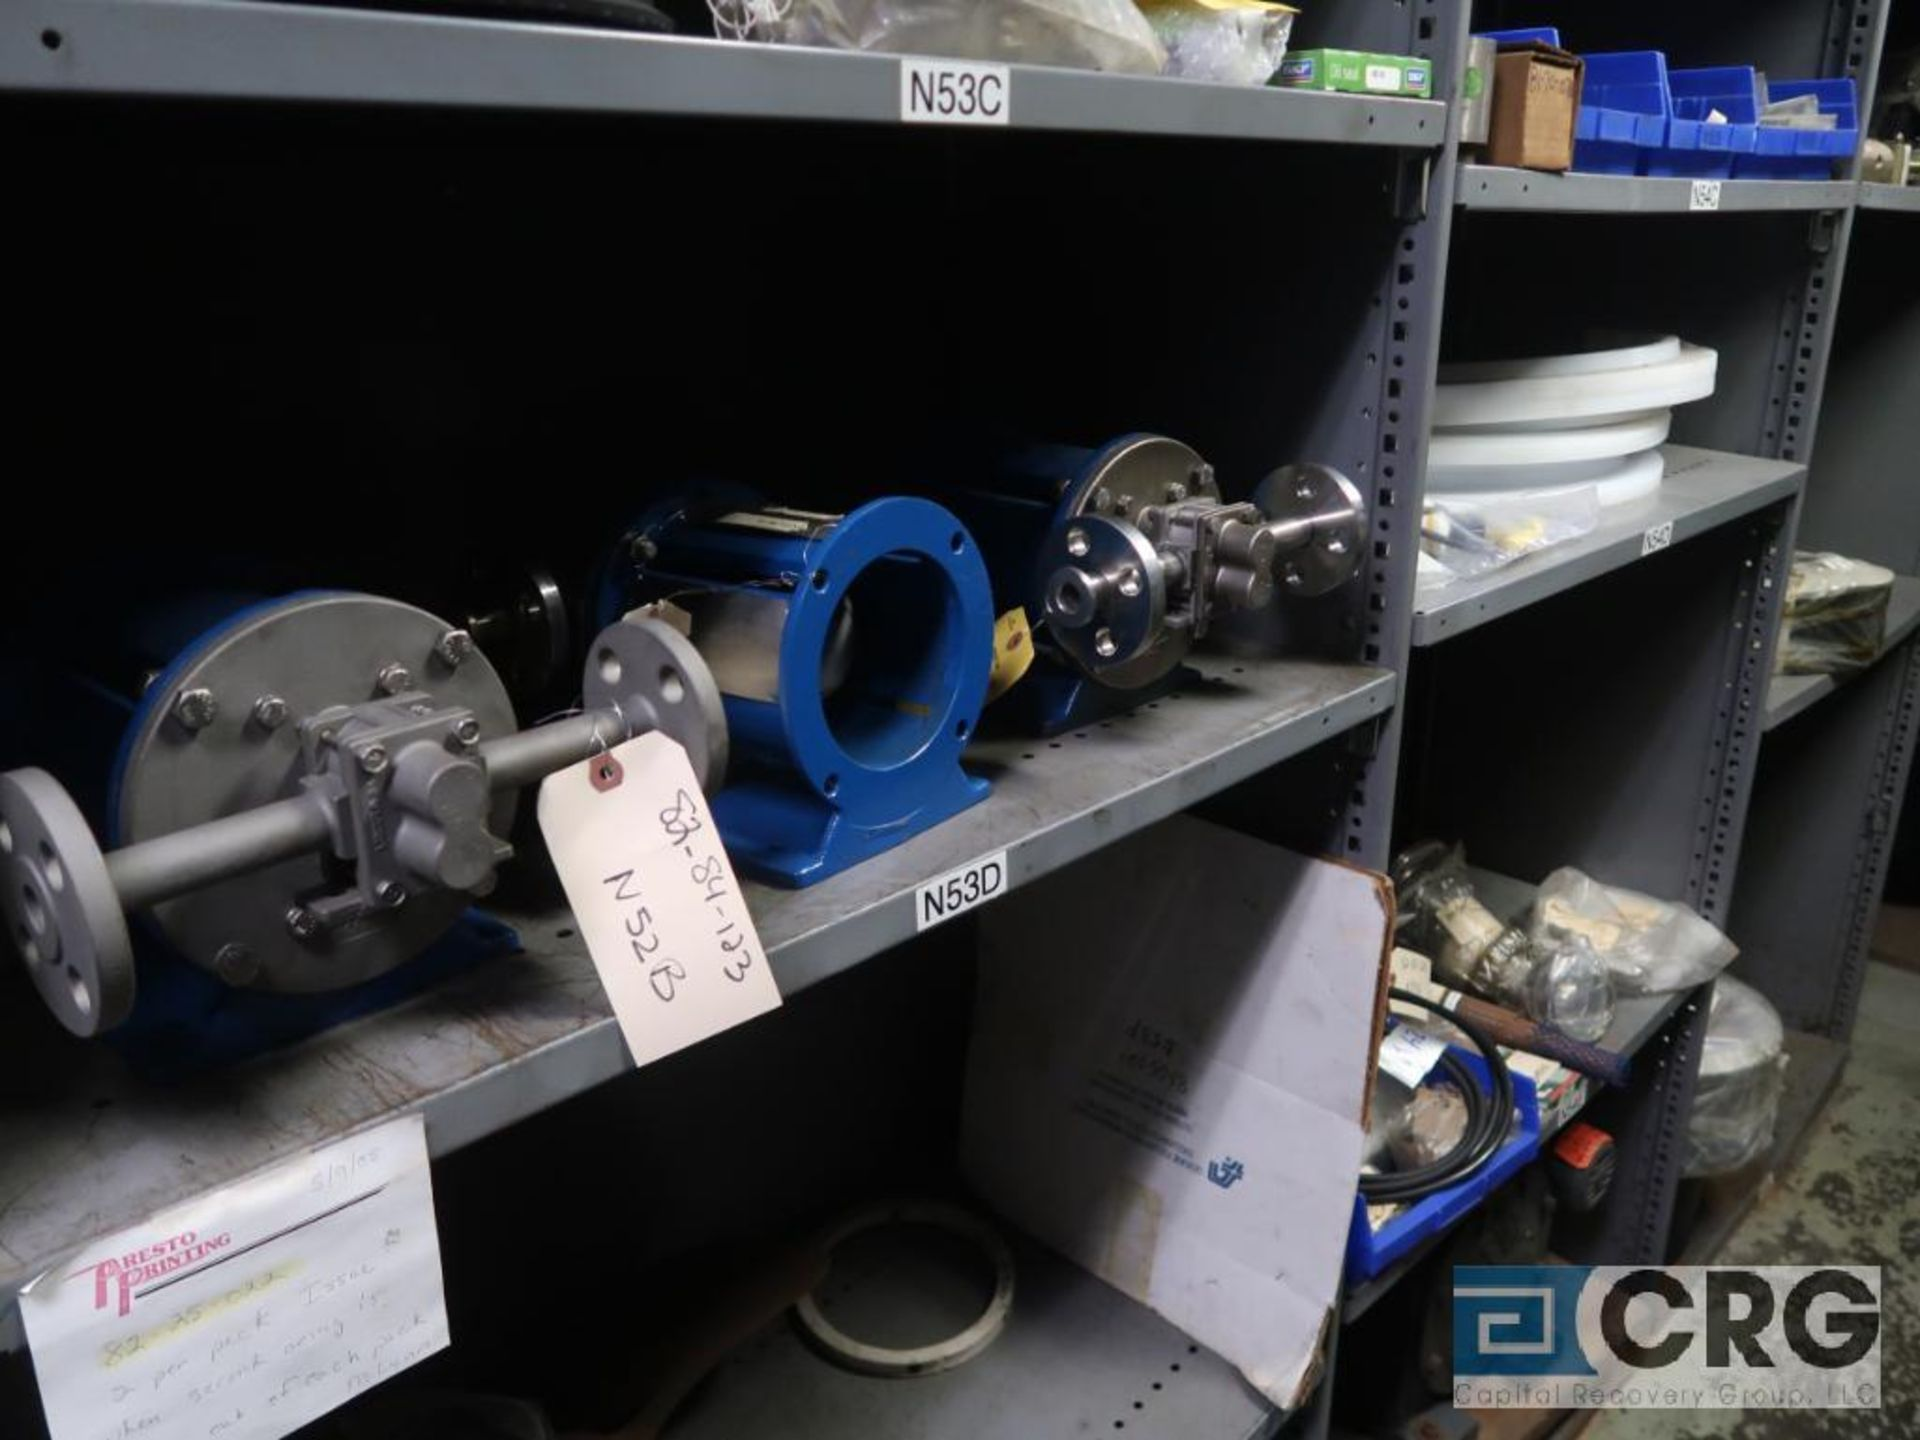 Lot of (35) sections with assorted parts including gaskets, fittings, shaft pins, gears, and - Image 10 of 17